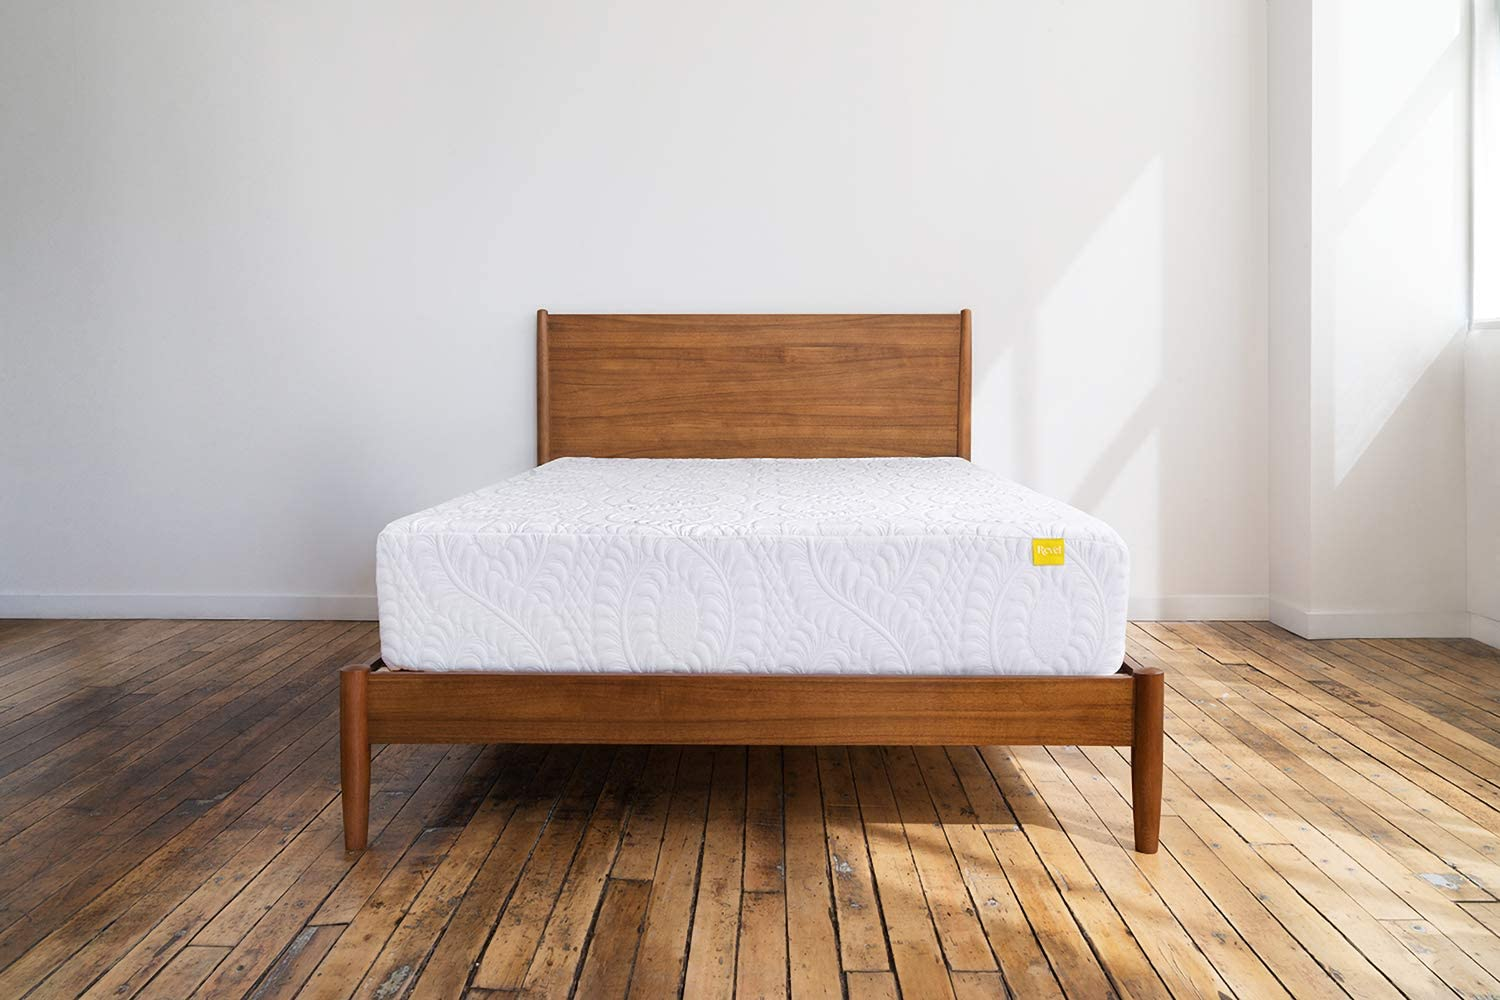 Revel Premium Cool Mattress (Twin XL), Featuring All Climate Cooling Gel Memory Foam and LiftTex Alternative Latex, Made in the USA with a 10-Year Warranty, Amazon Exclusive